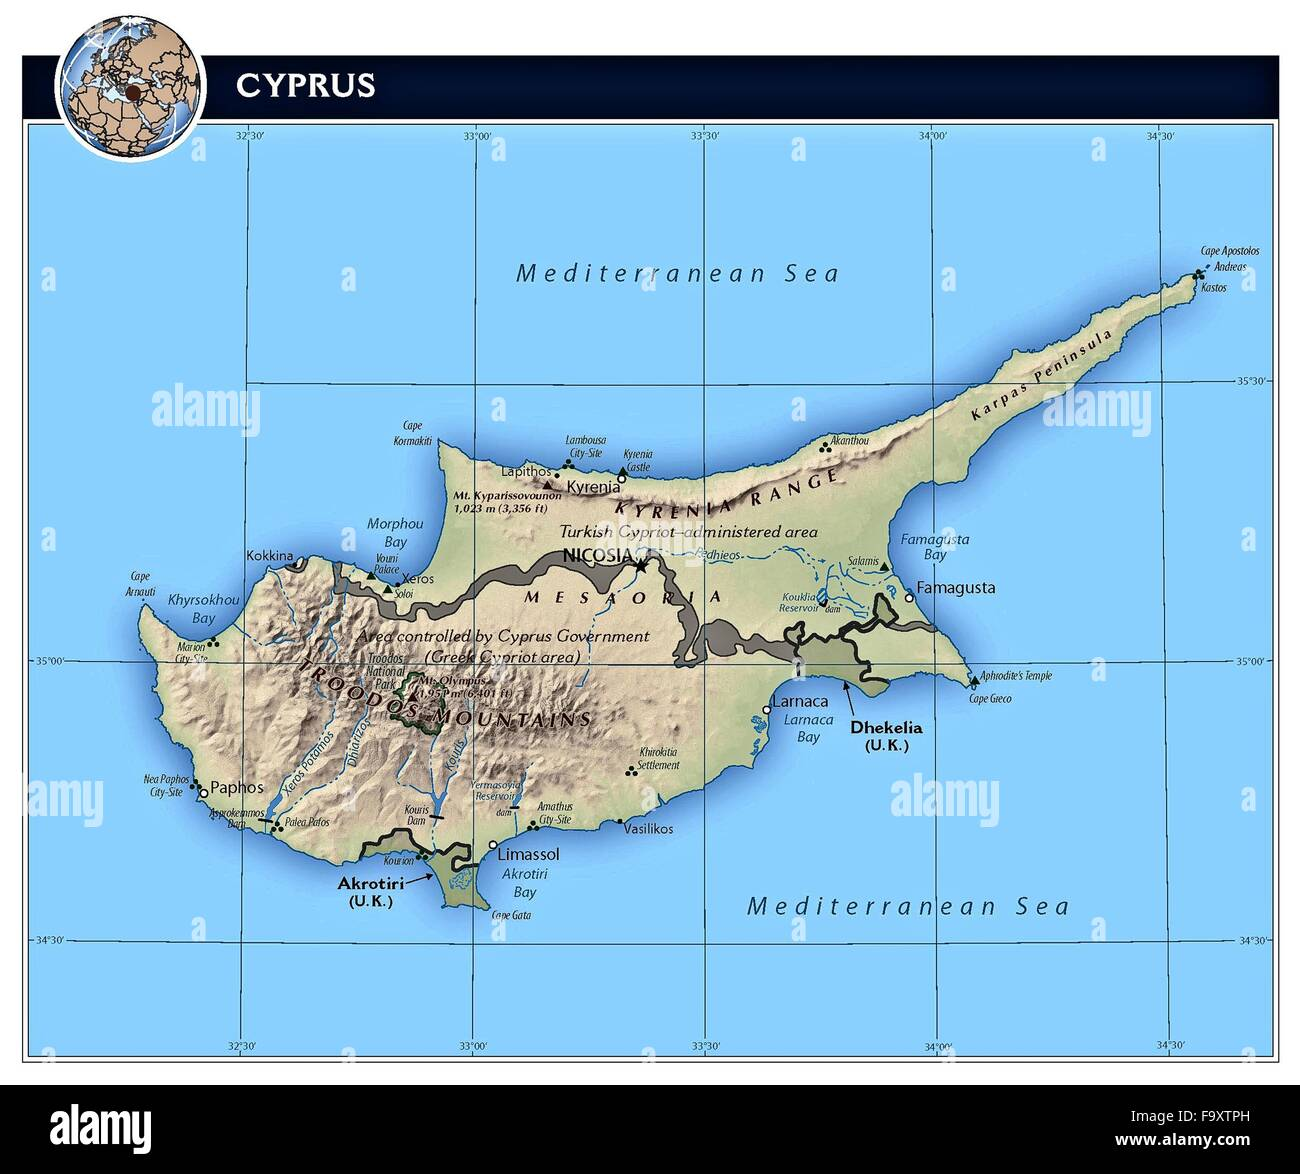 Cyprus island country physiography map stock photo 92173945 alamy cyprus island country physiography map gumiabroncs Image collections